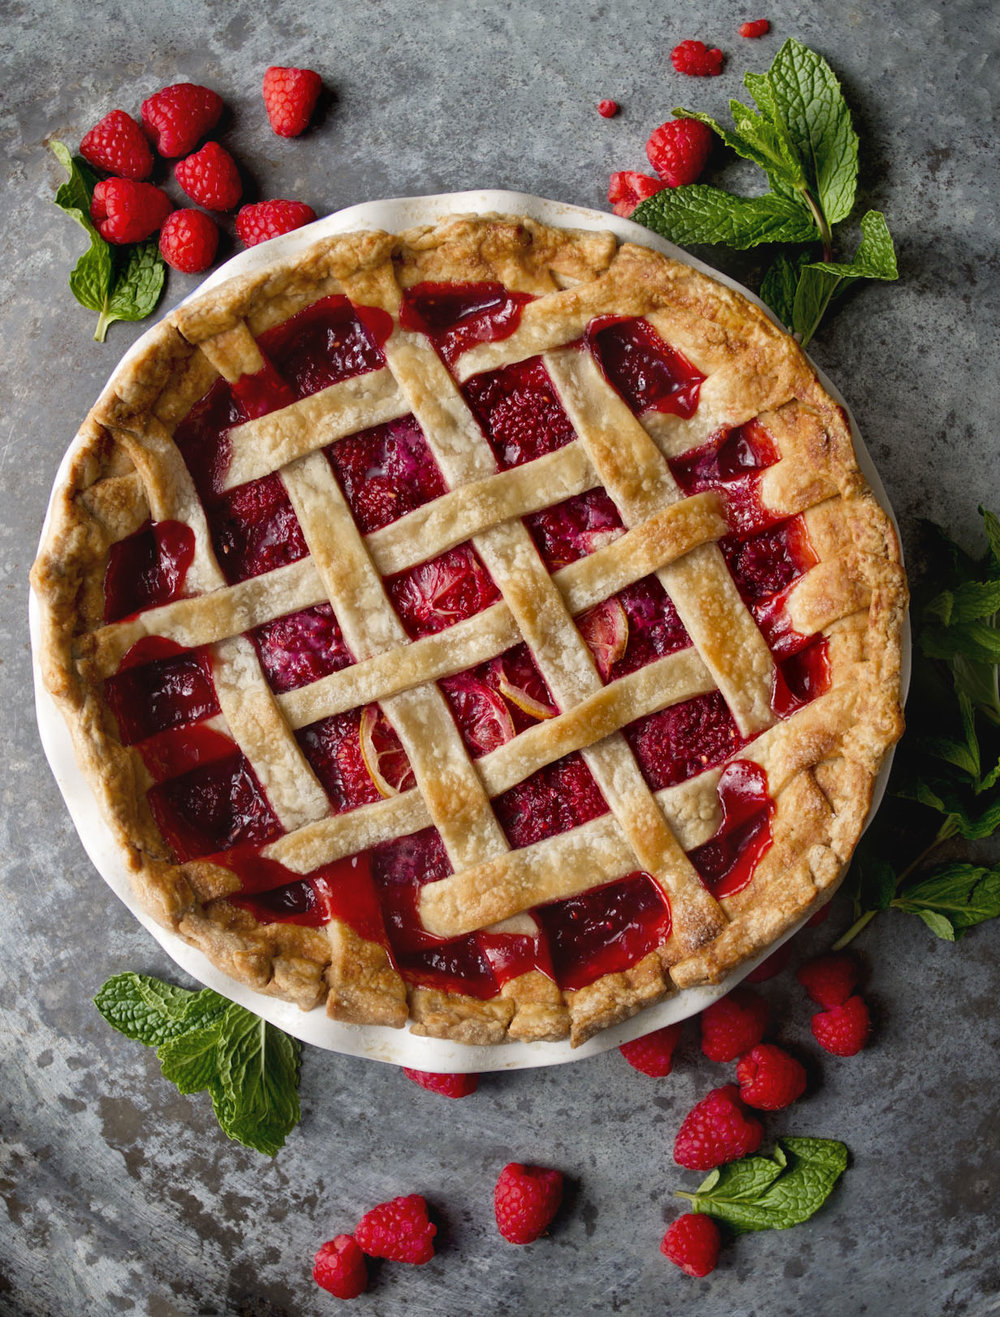 red-raspberry-mint-lattice-pie-food-photography.jpg